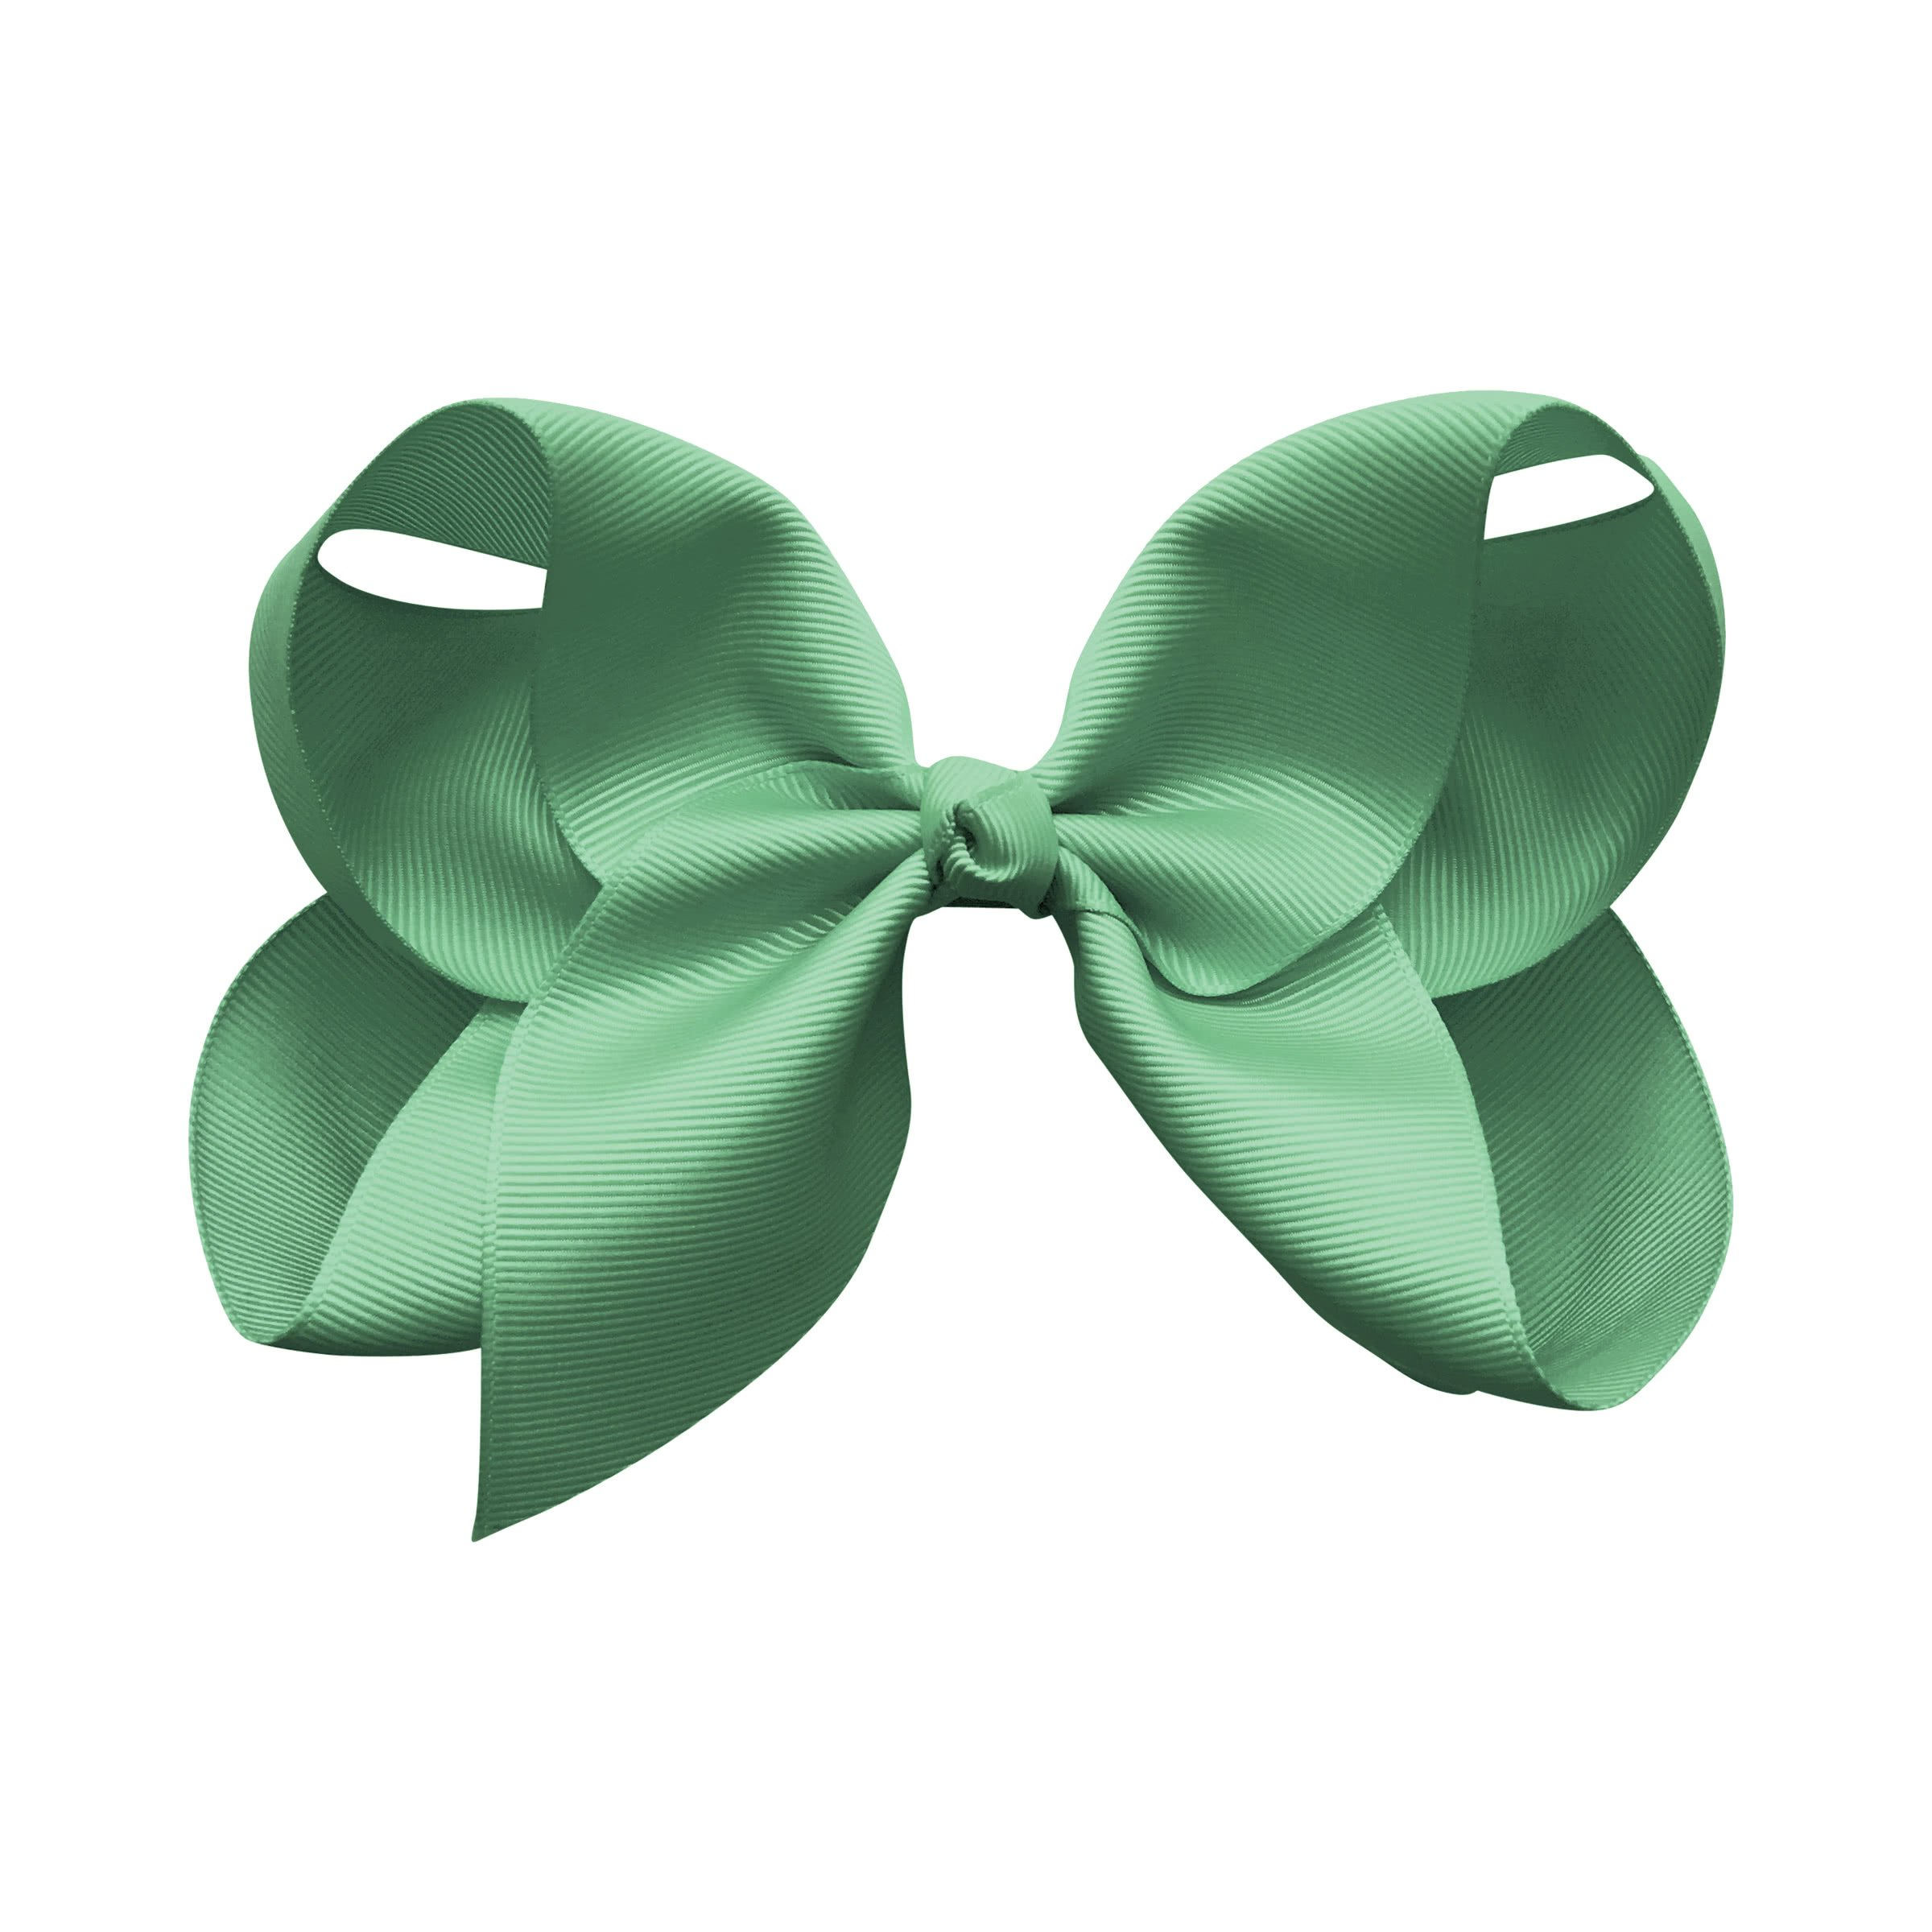 Image of Jumbo Boutique Bow - alligator clip - celadon